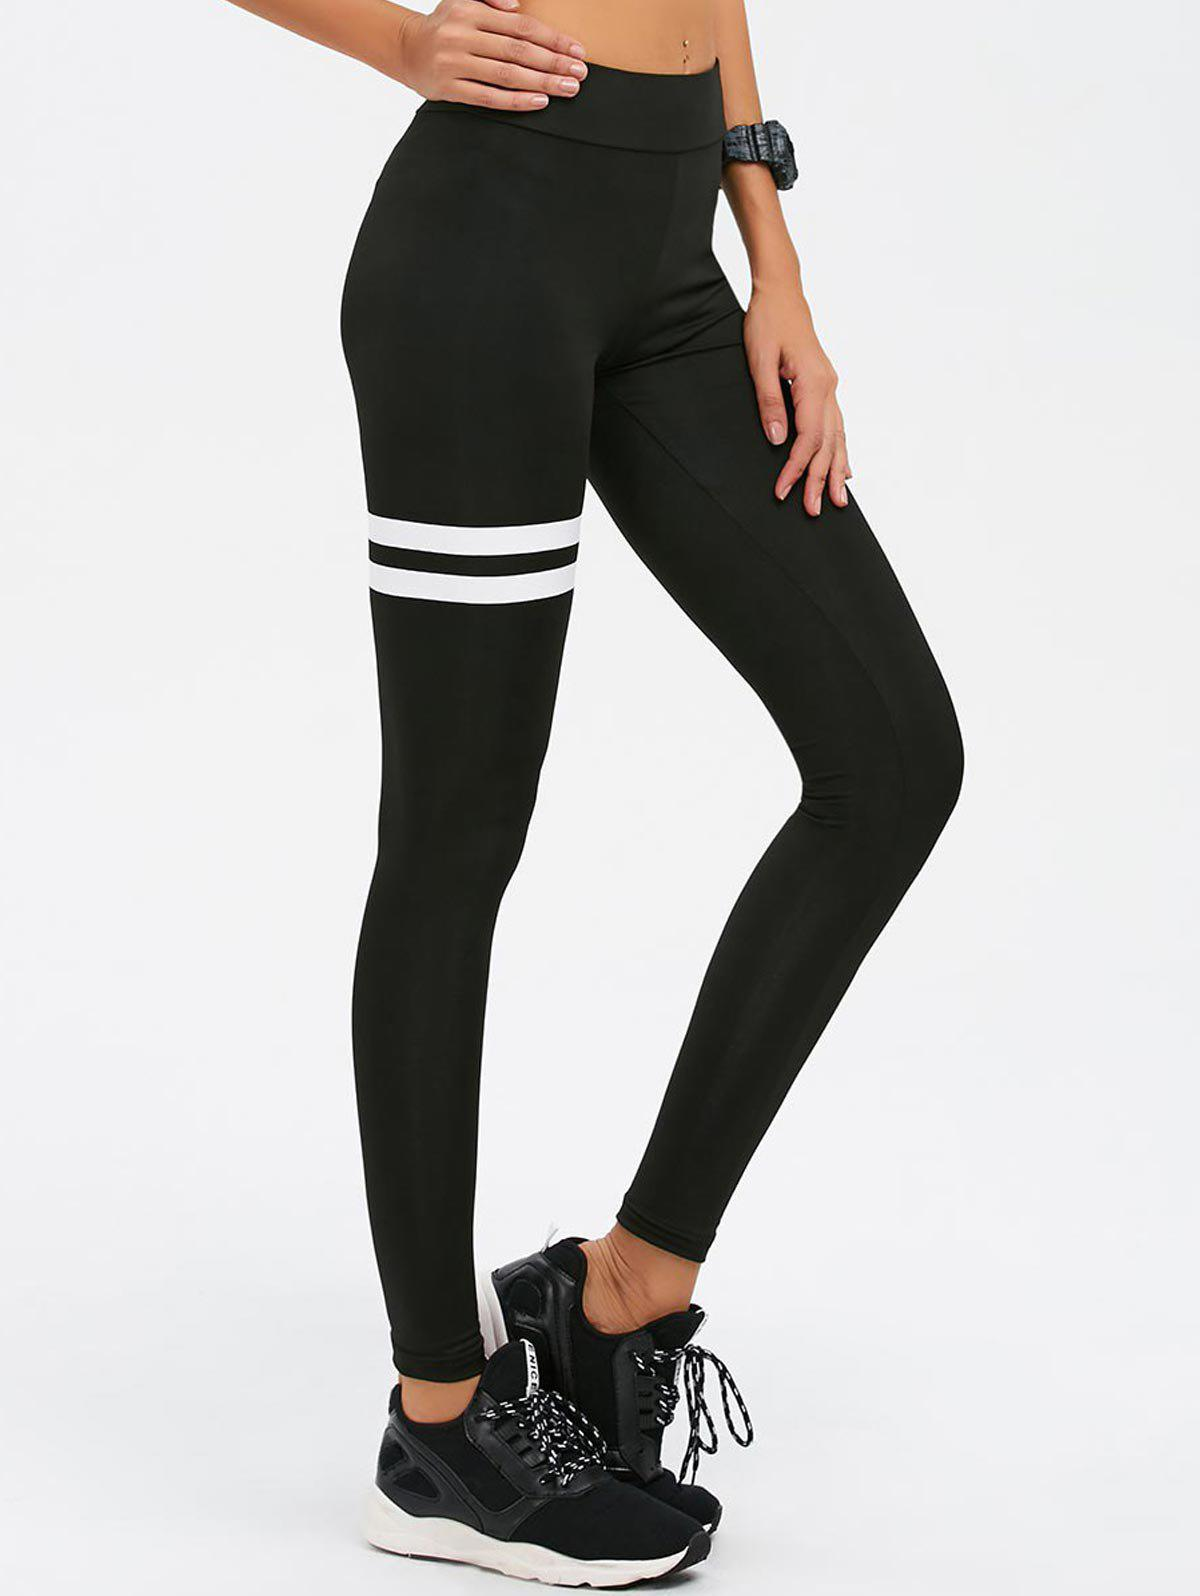 482c8f0a6ff416 42% OFF] High Waist Skinny Sports Leggings | Rosegal